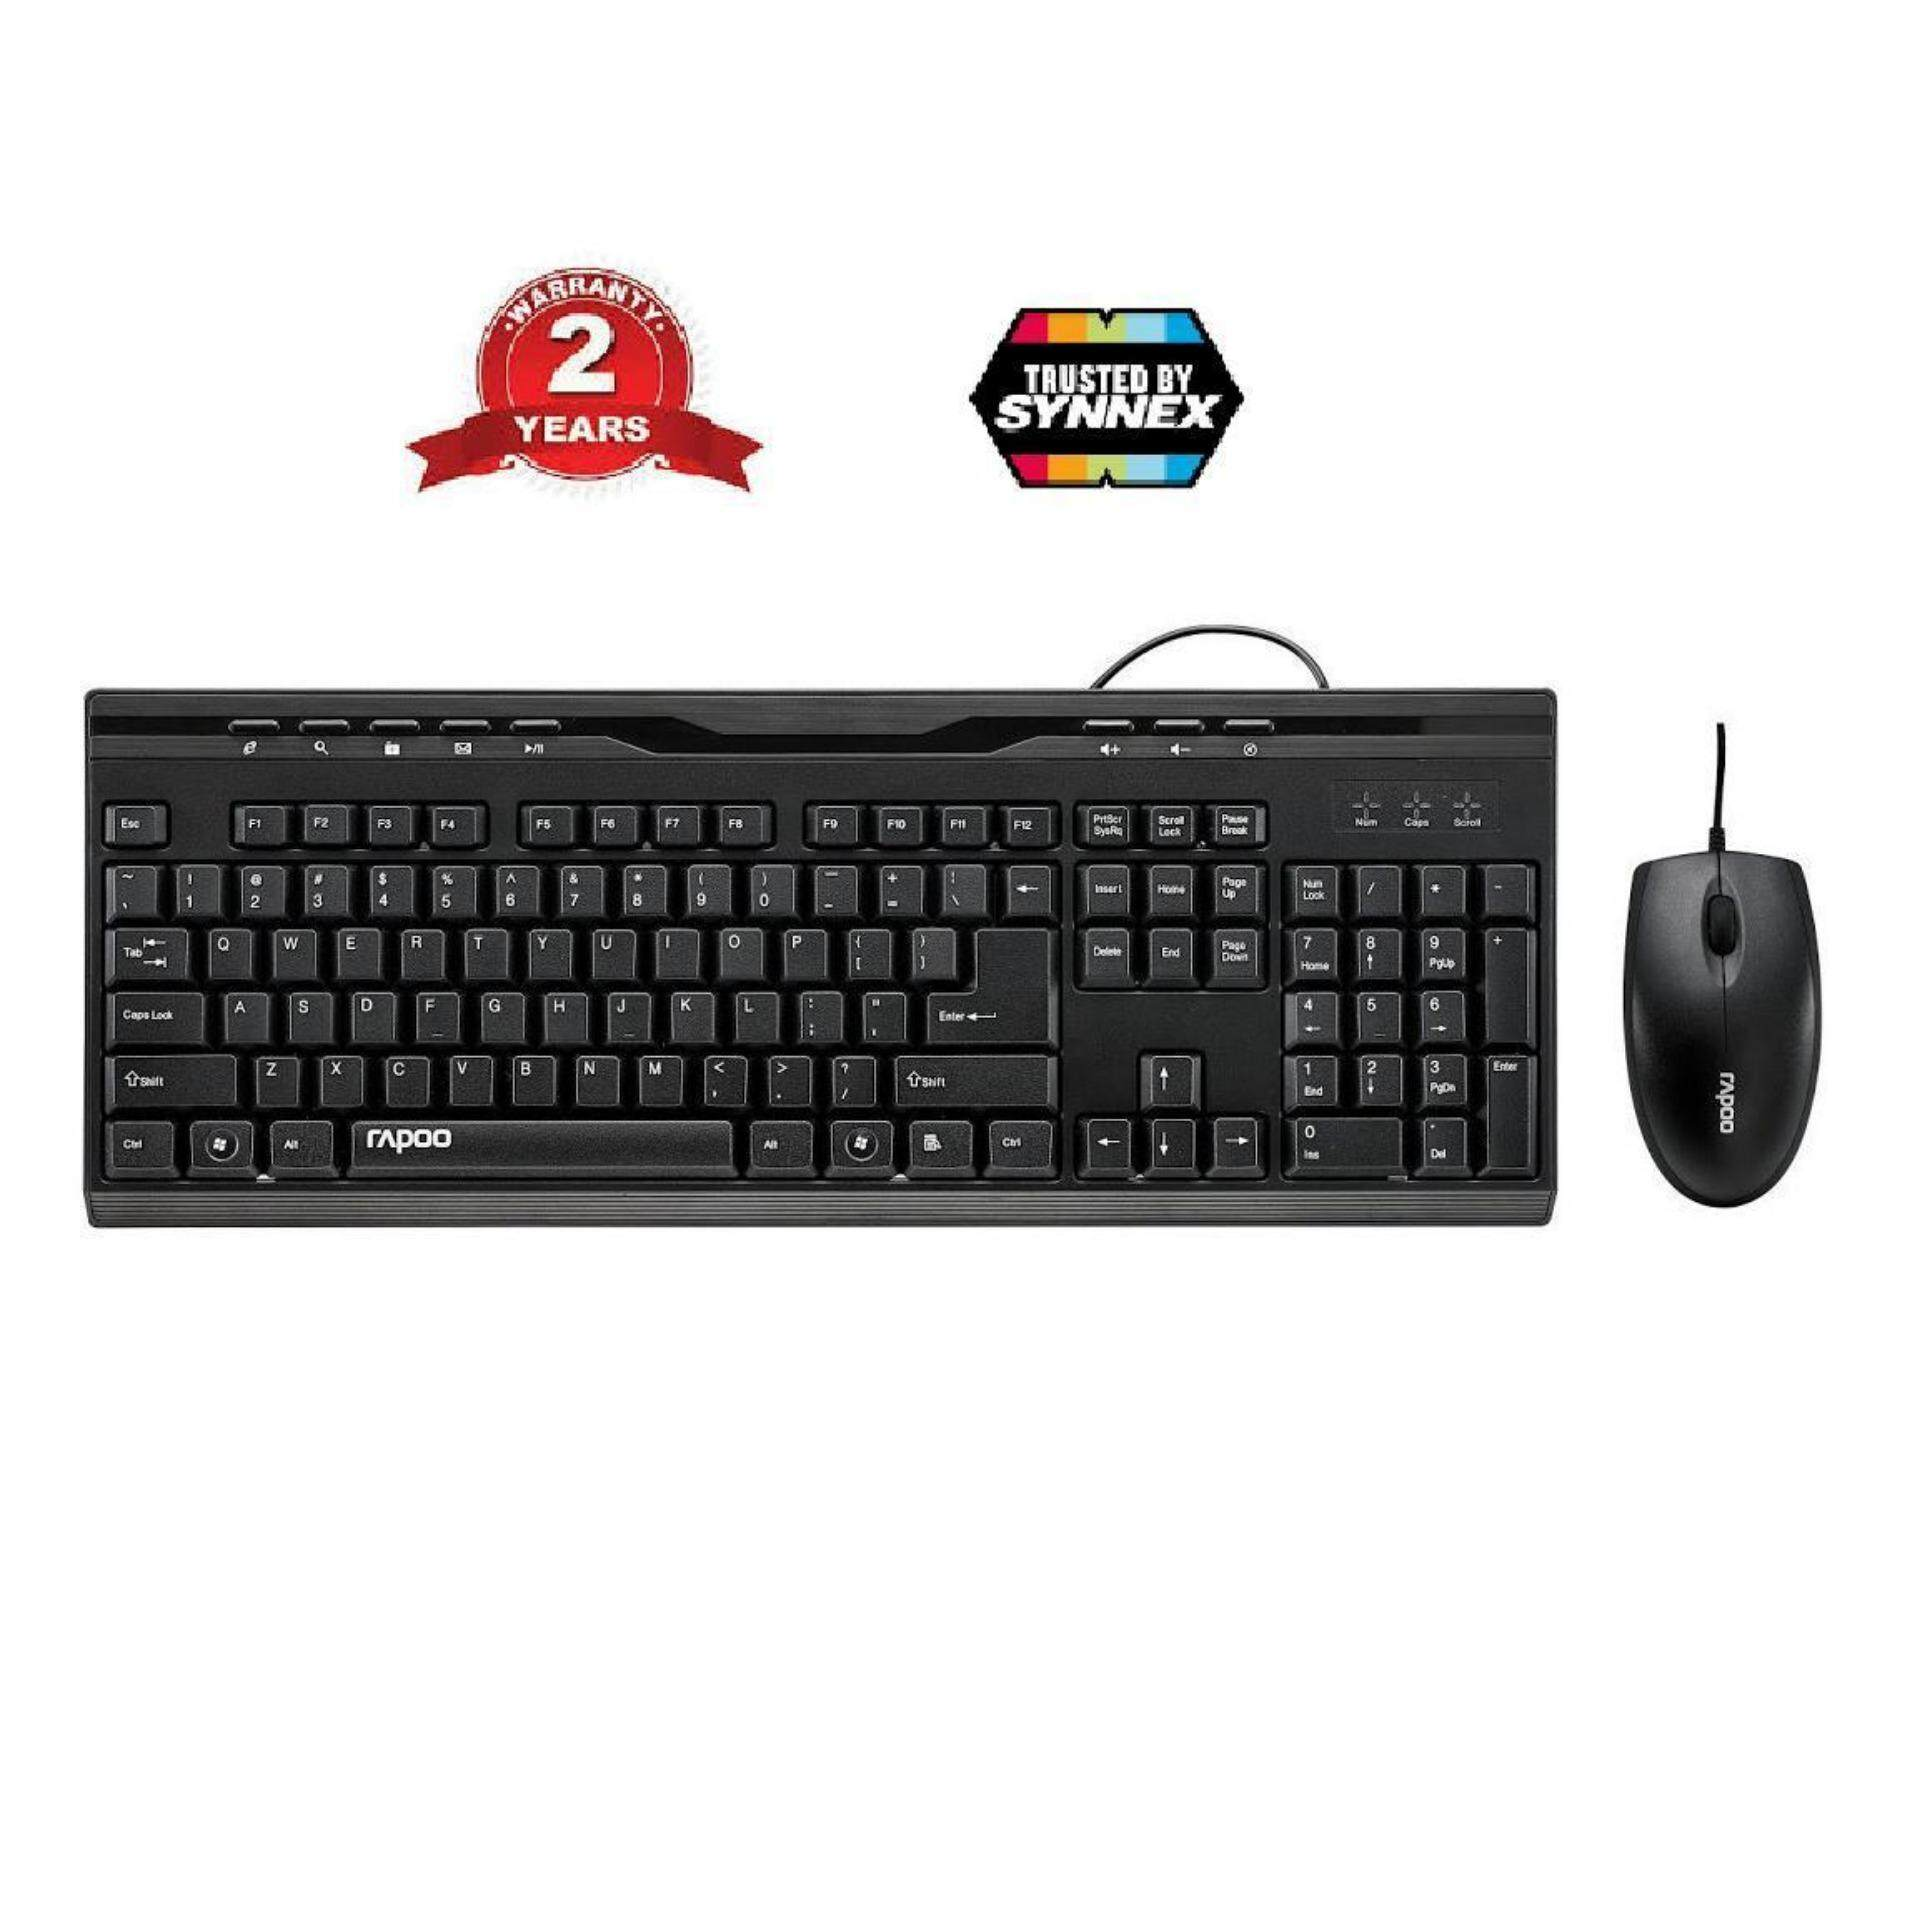 Rapoo Optical Mouse & keyboard Combo NX1710-Black -2 Years (By Synnex)